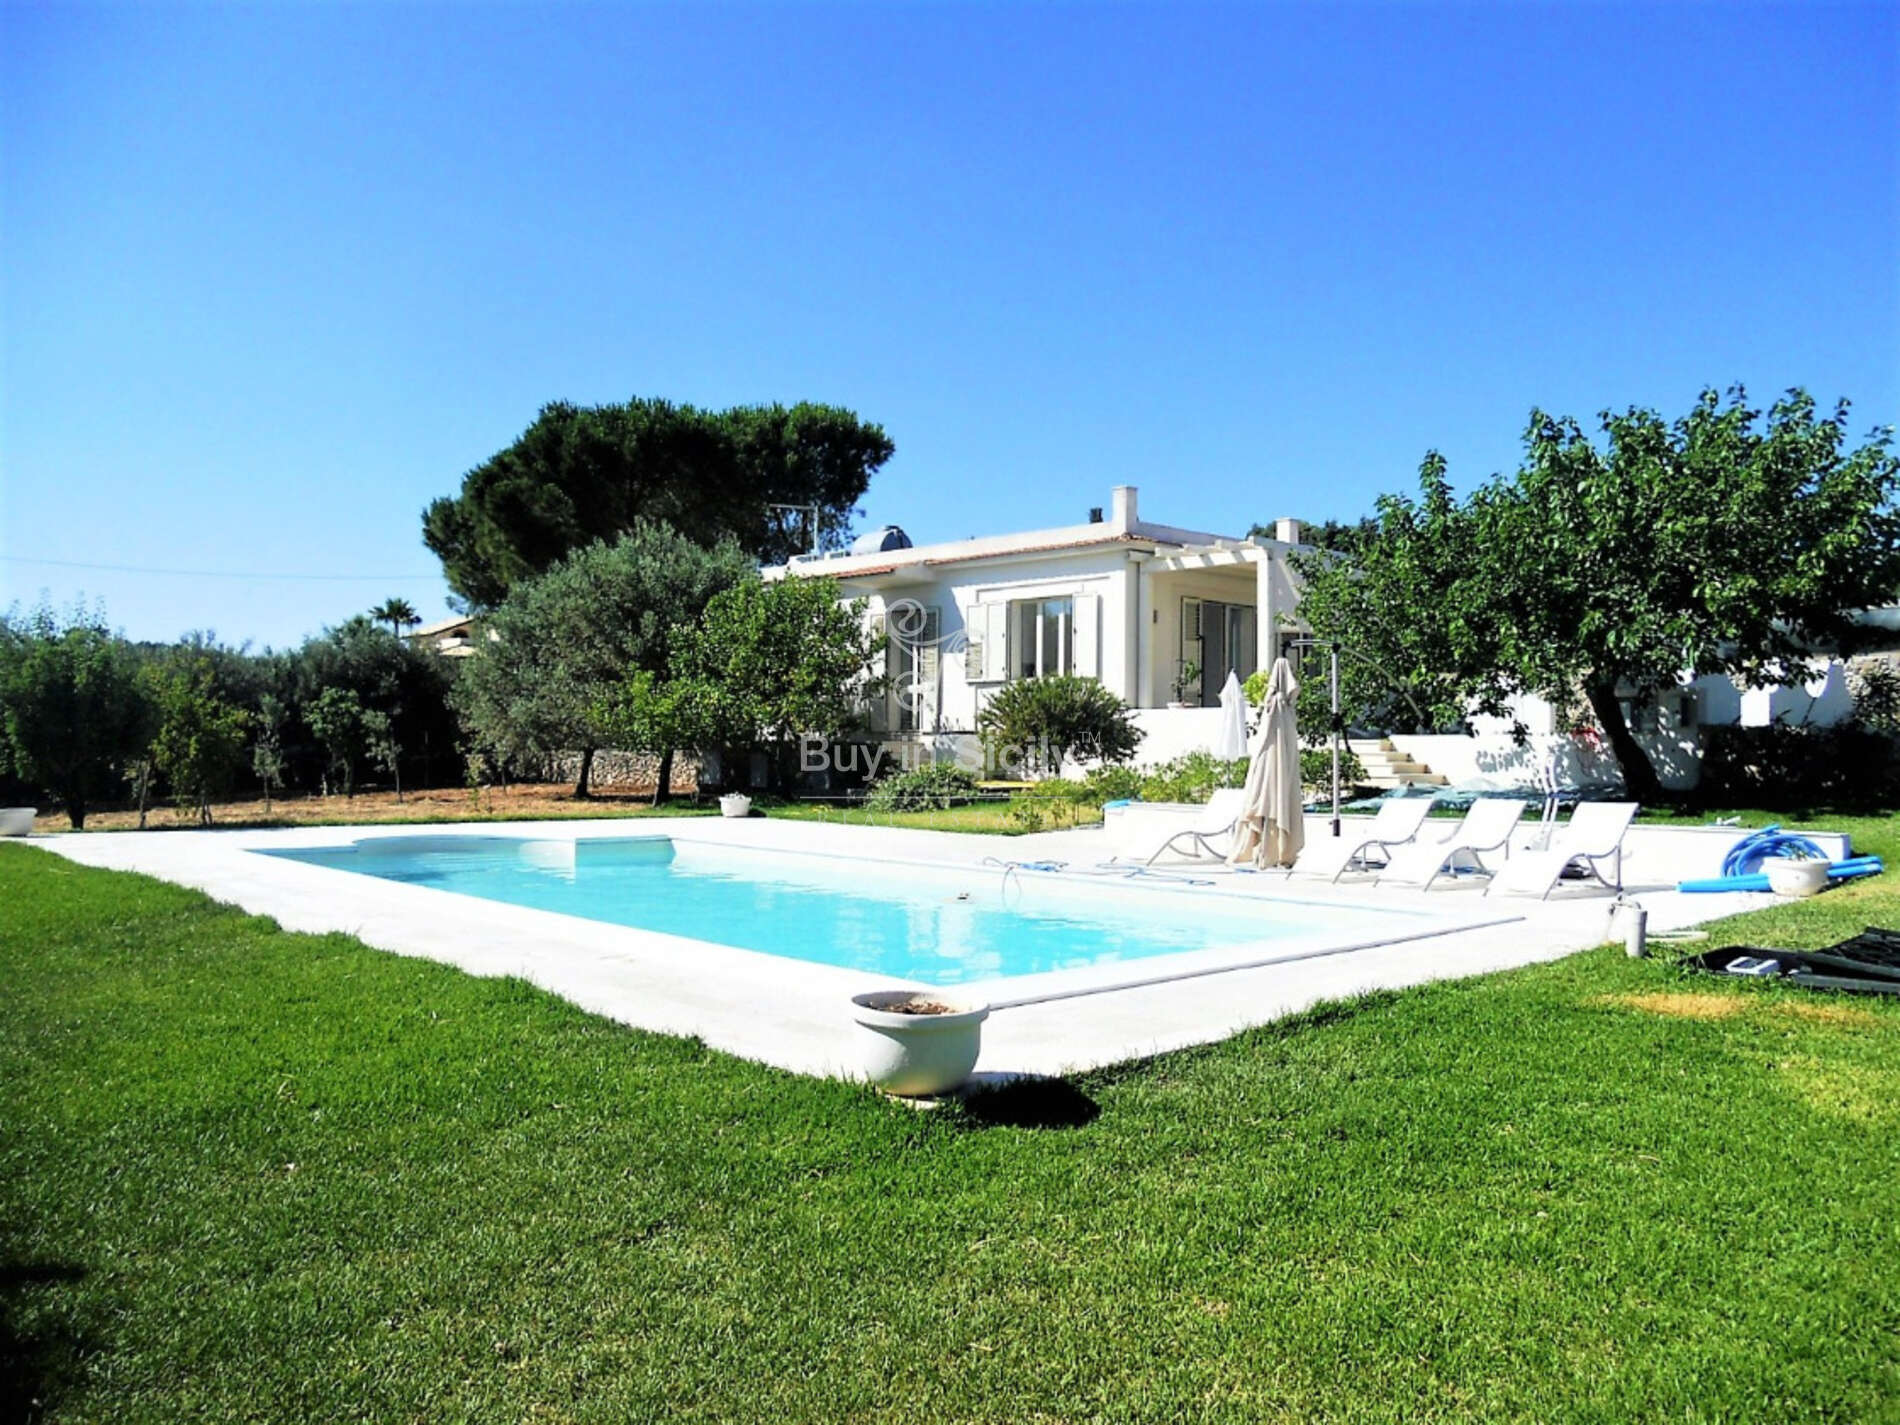 Renovated Villa with pool in Avola